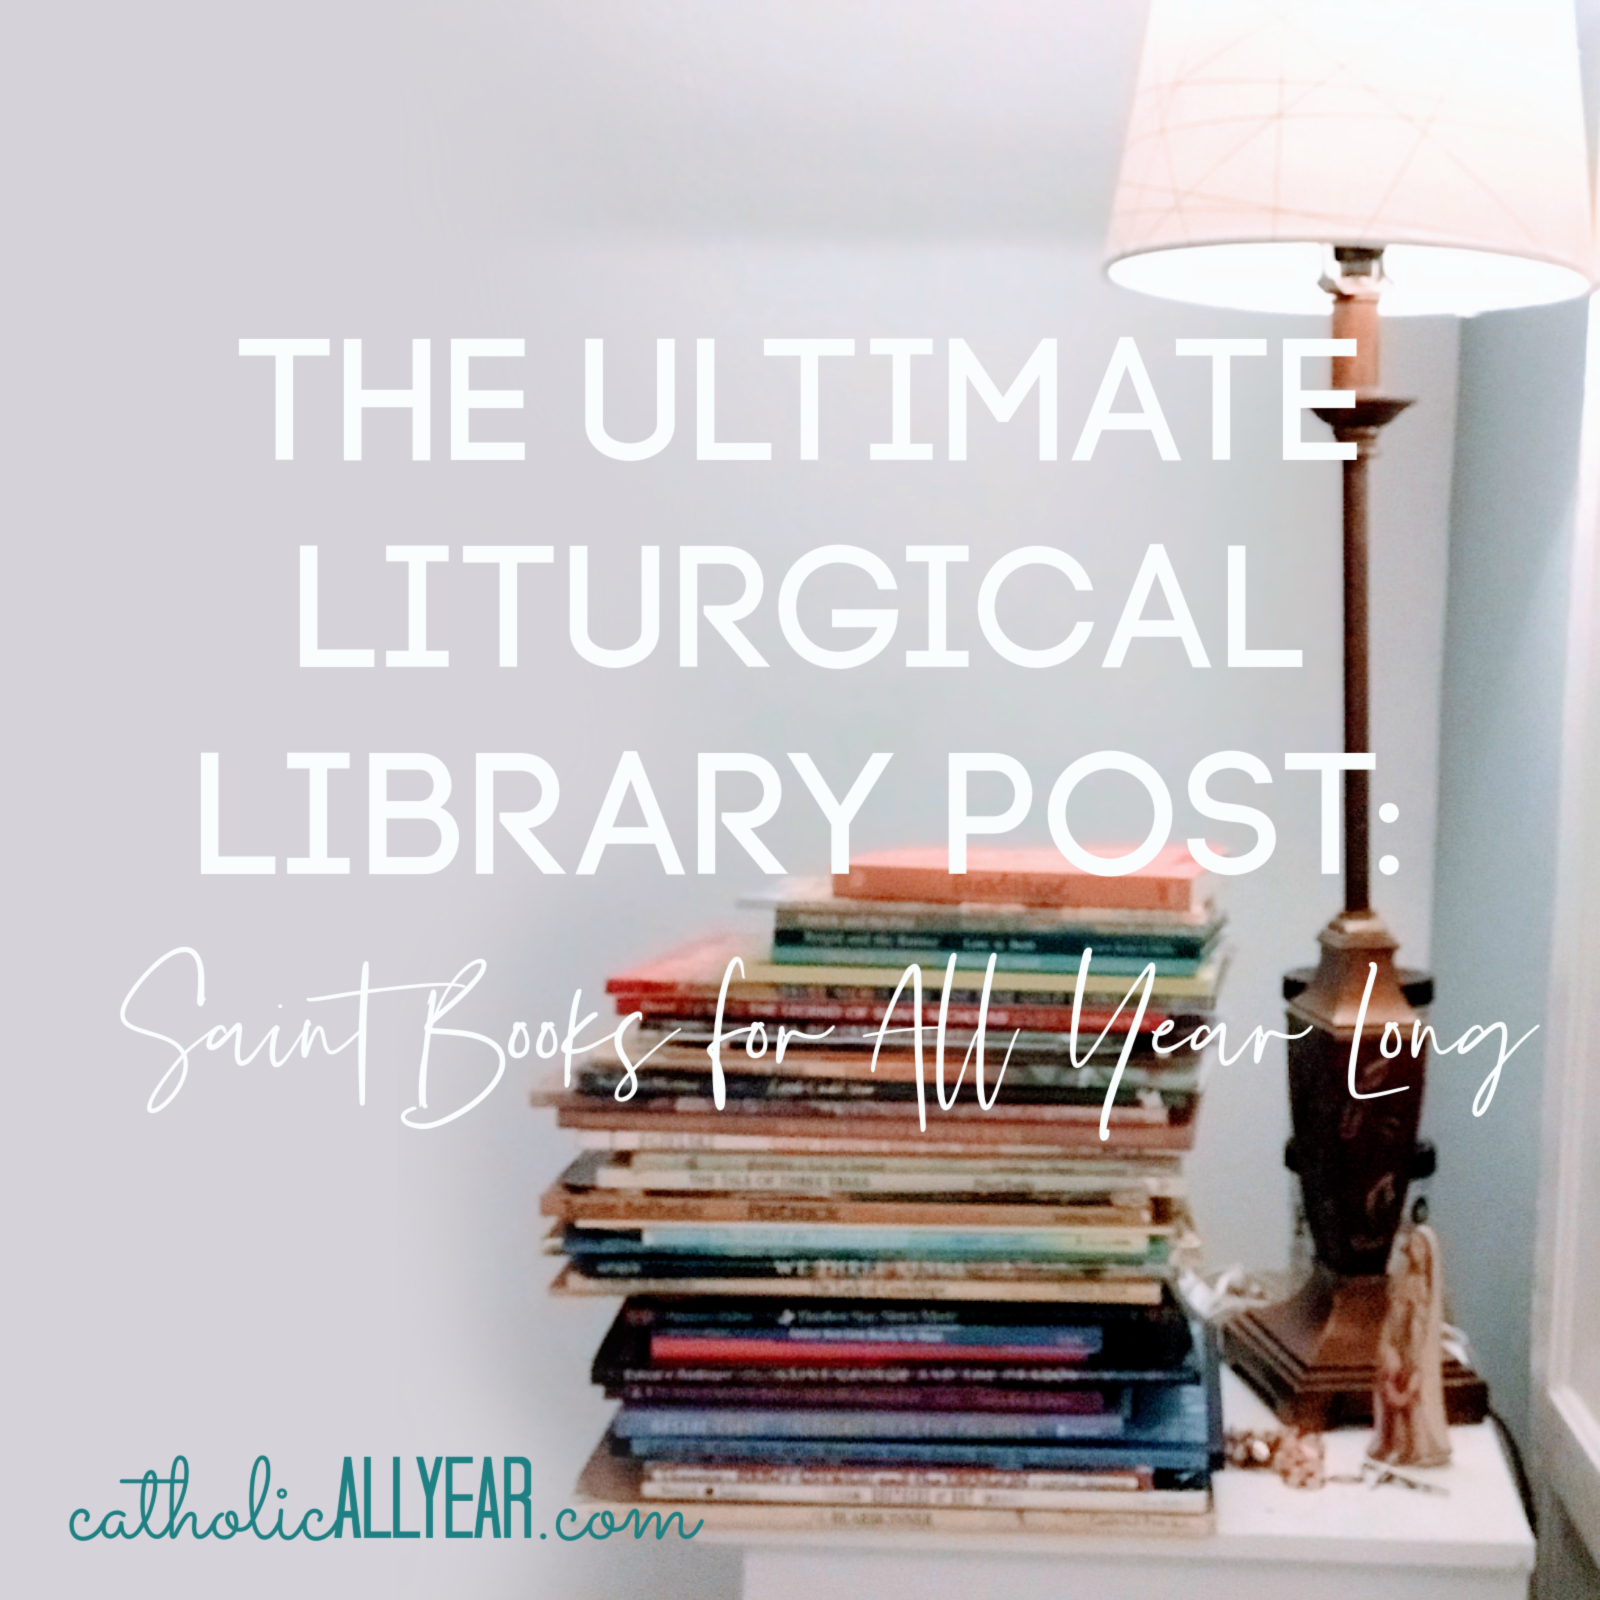 The Ultimate Liturgical Library Post: Saint Books for All Year Long